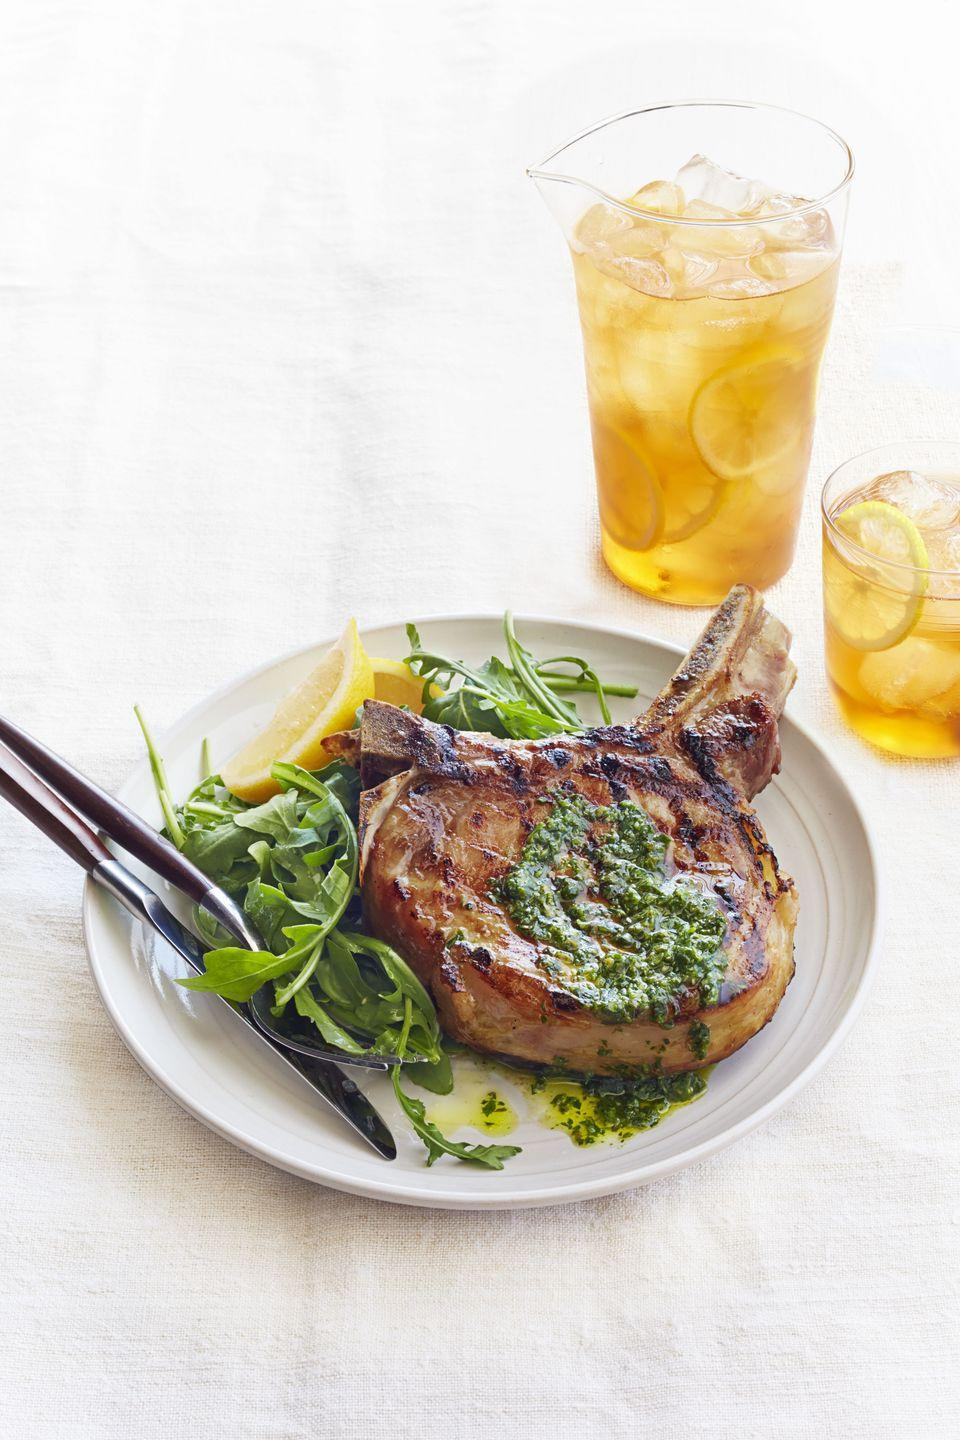 "<p>Give the burgers and dogs a rest and serve this grilled pork chop at your next BBQ instead.</p><p><a href=""https://www.goodhousekeeping.com/food-recipes/a16059/italian-pork-chops-recipe-ghk0814/"" rel=""nofollow noopener"" target=""_blank"" data-ylk=""slk:Get the recipe for Italian Pork Chops »"" class=""link rapid-noclick-resp""><em>Get the recipe for Italian Pork Chops »</em></a></p>"